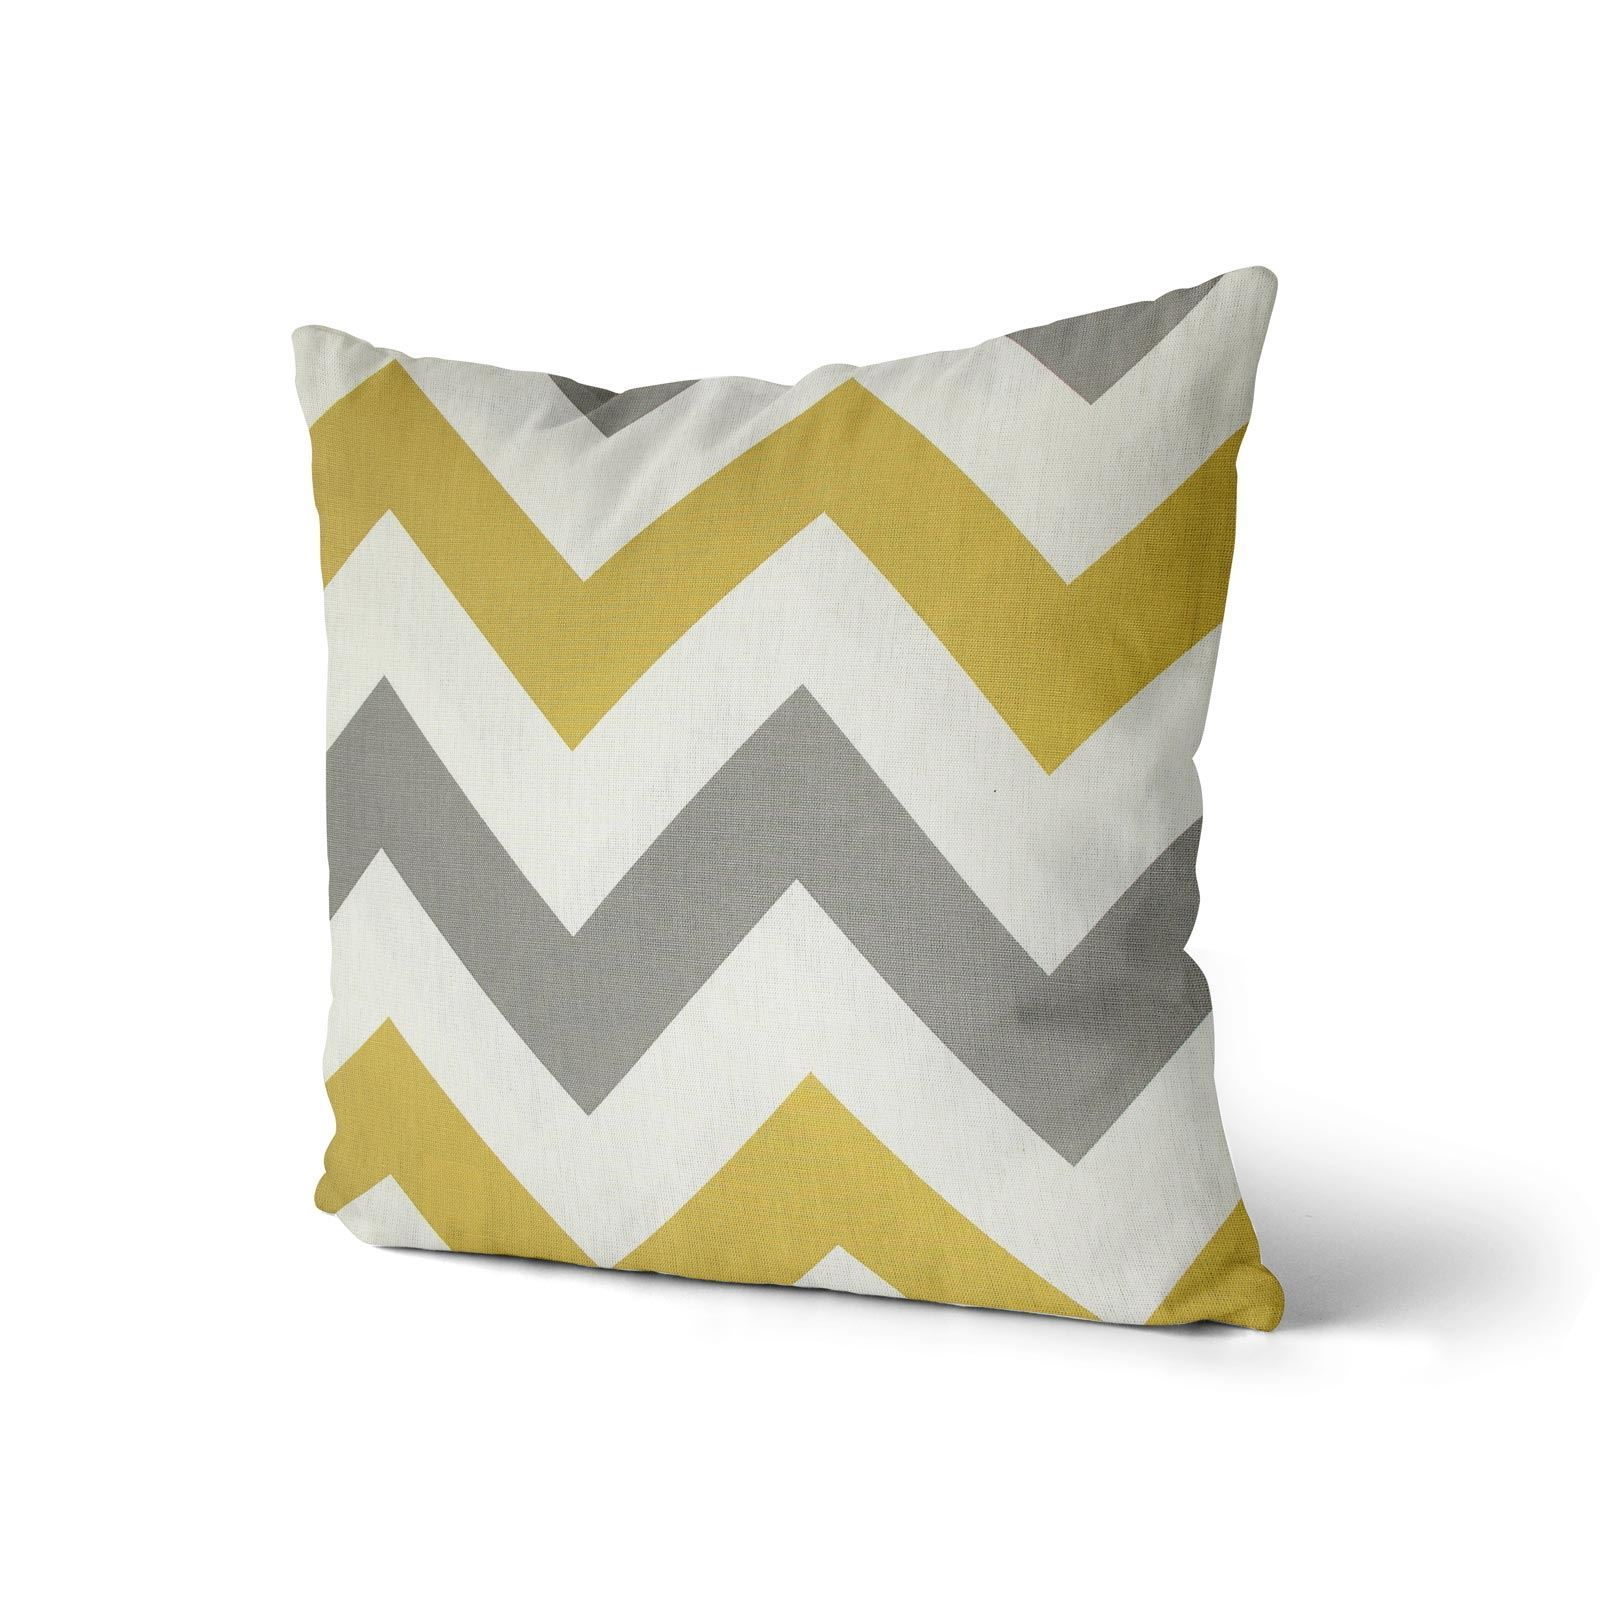 Grey-Ochre-Mustard-Cushion-Cover-Collection-17-034-18-034-Covers-Filled-Cushions thumbnail 53